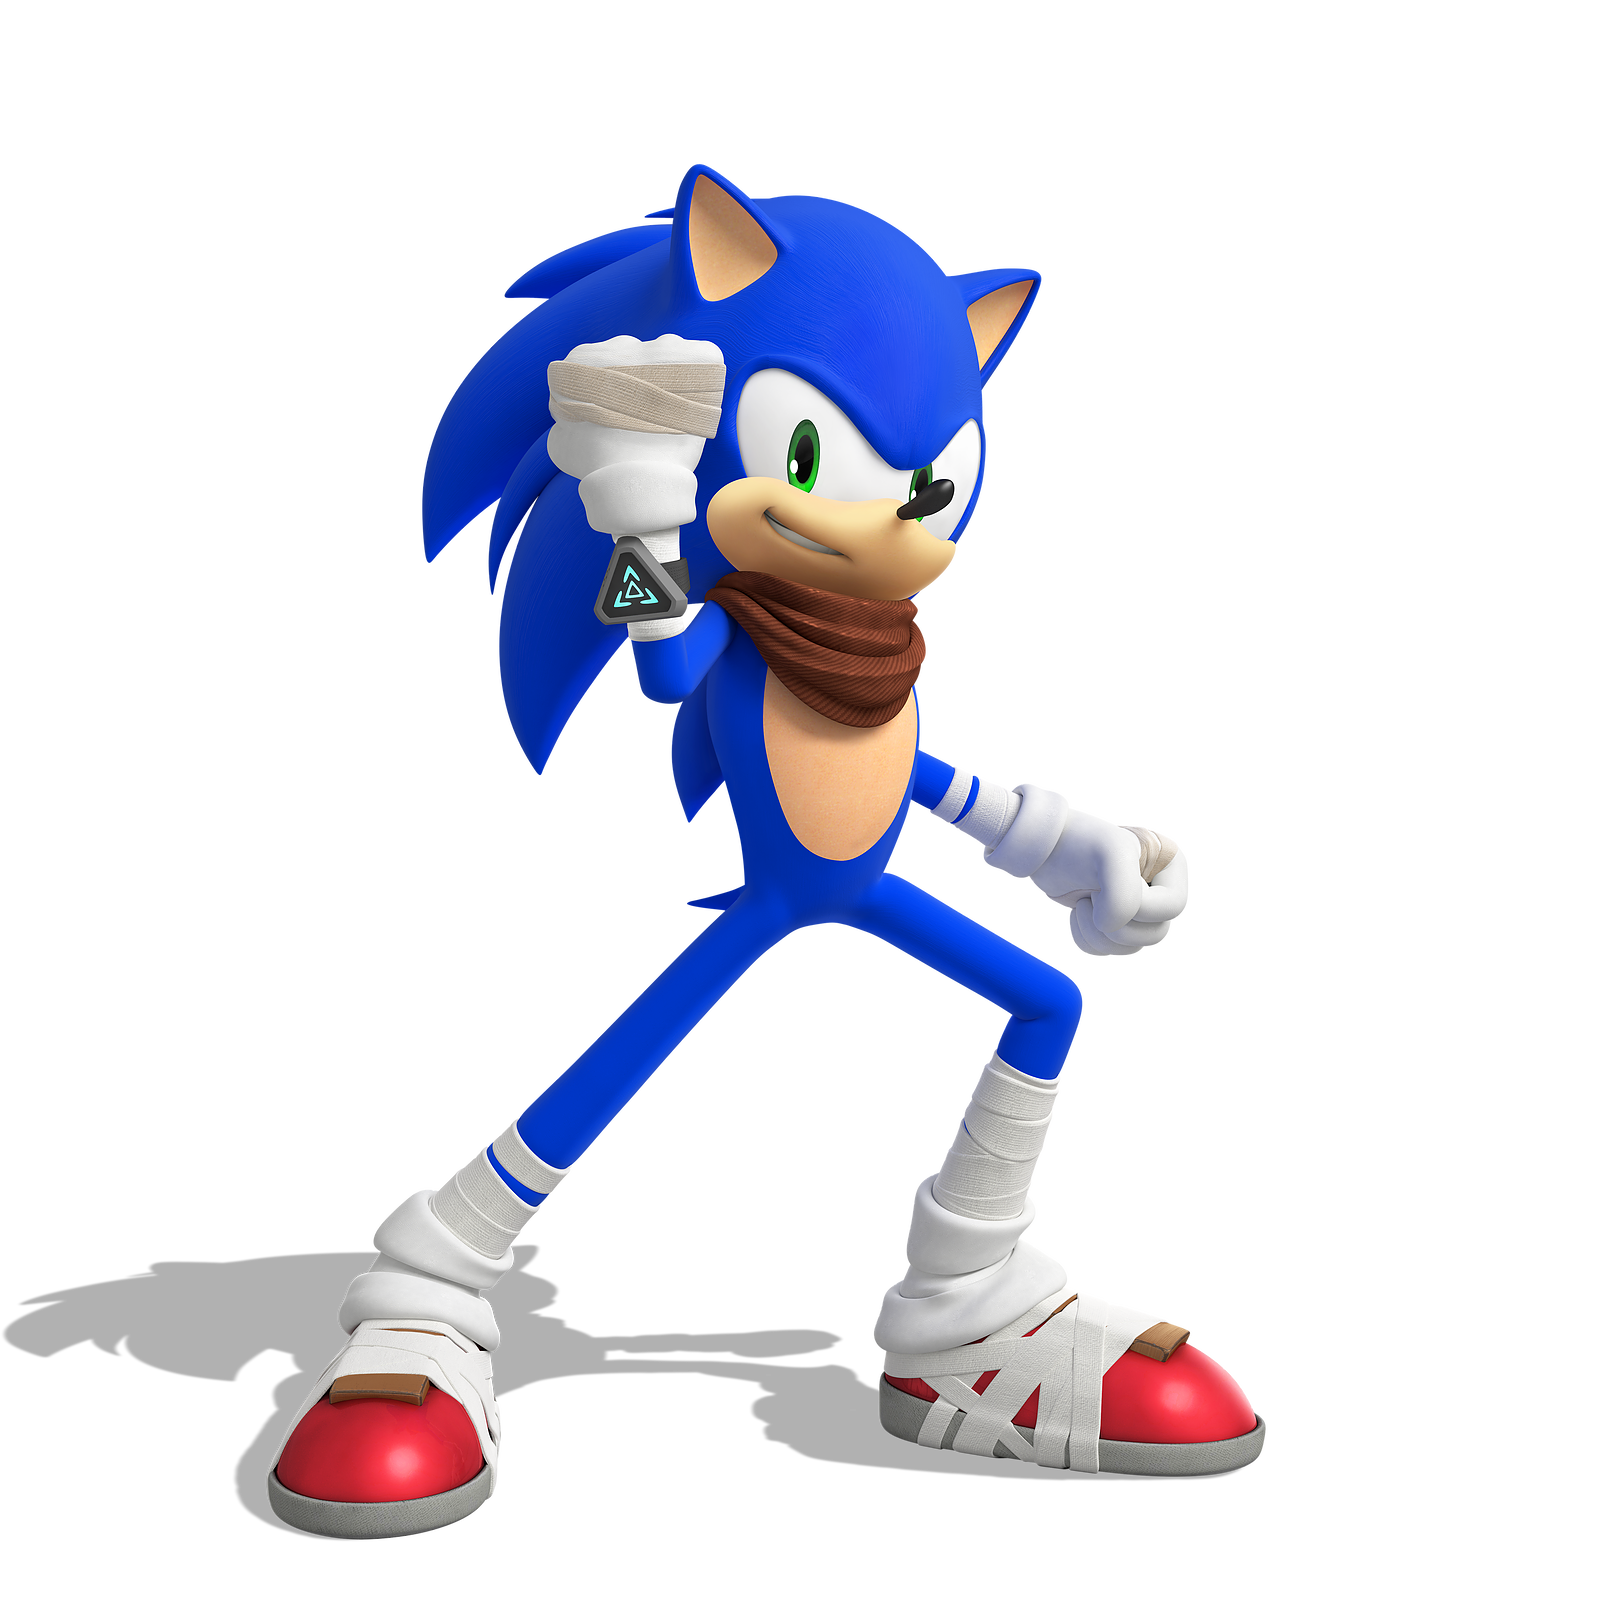 sonic mania sonic news network fandom powered by wikia autos post camry 2002 manual book toyota camry 2002 manual pdf